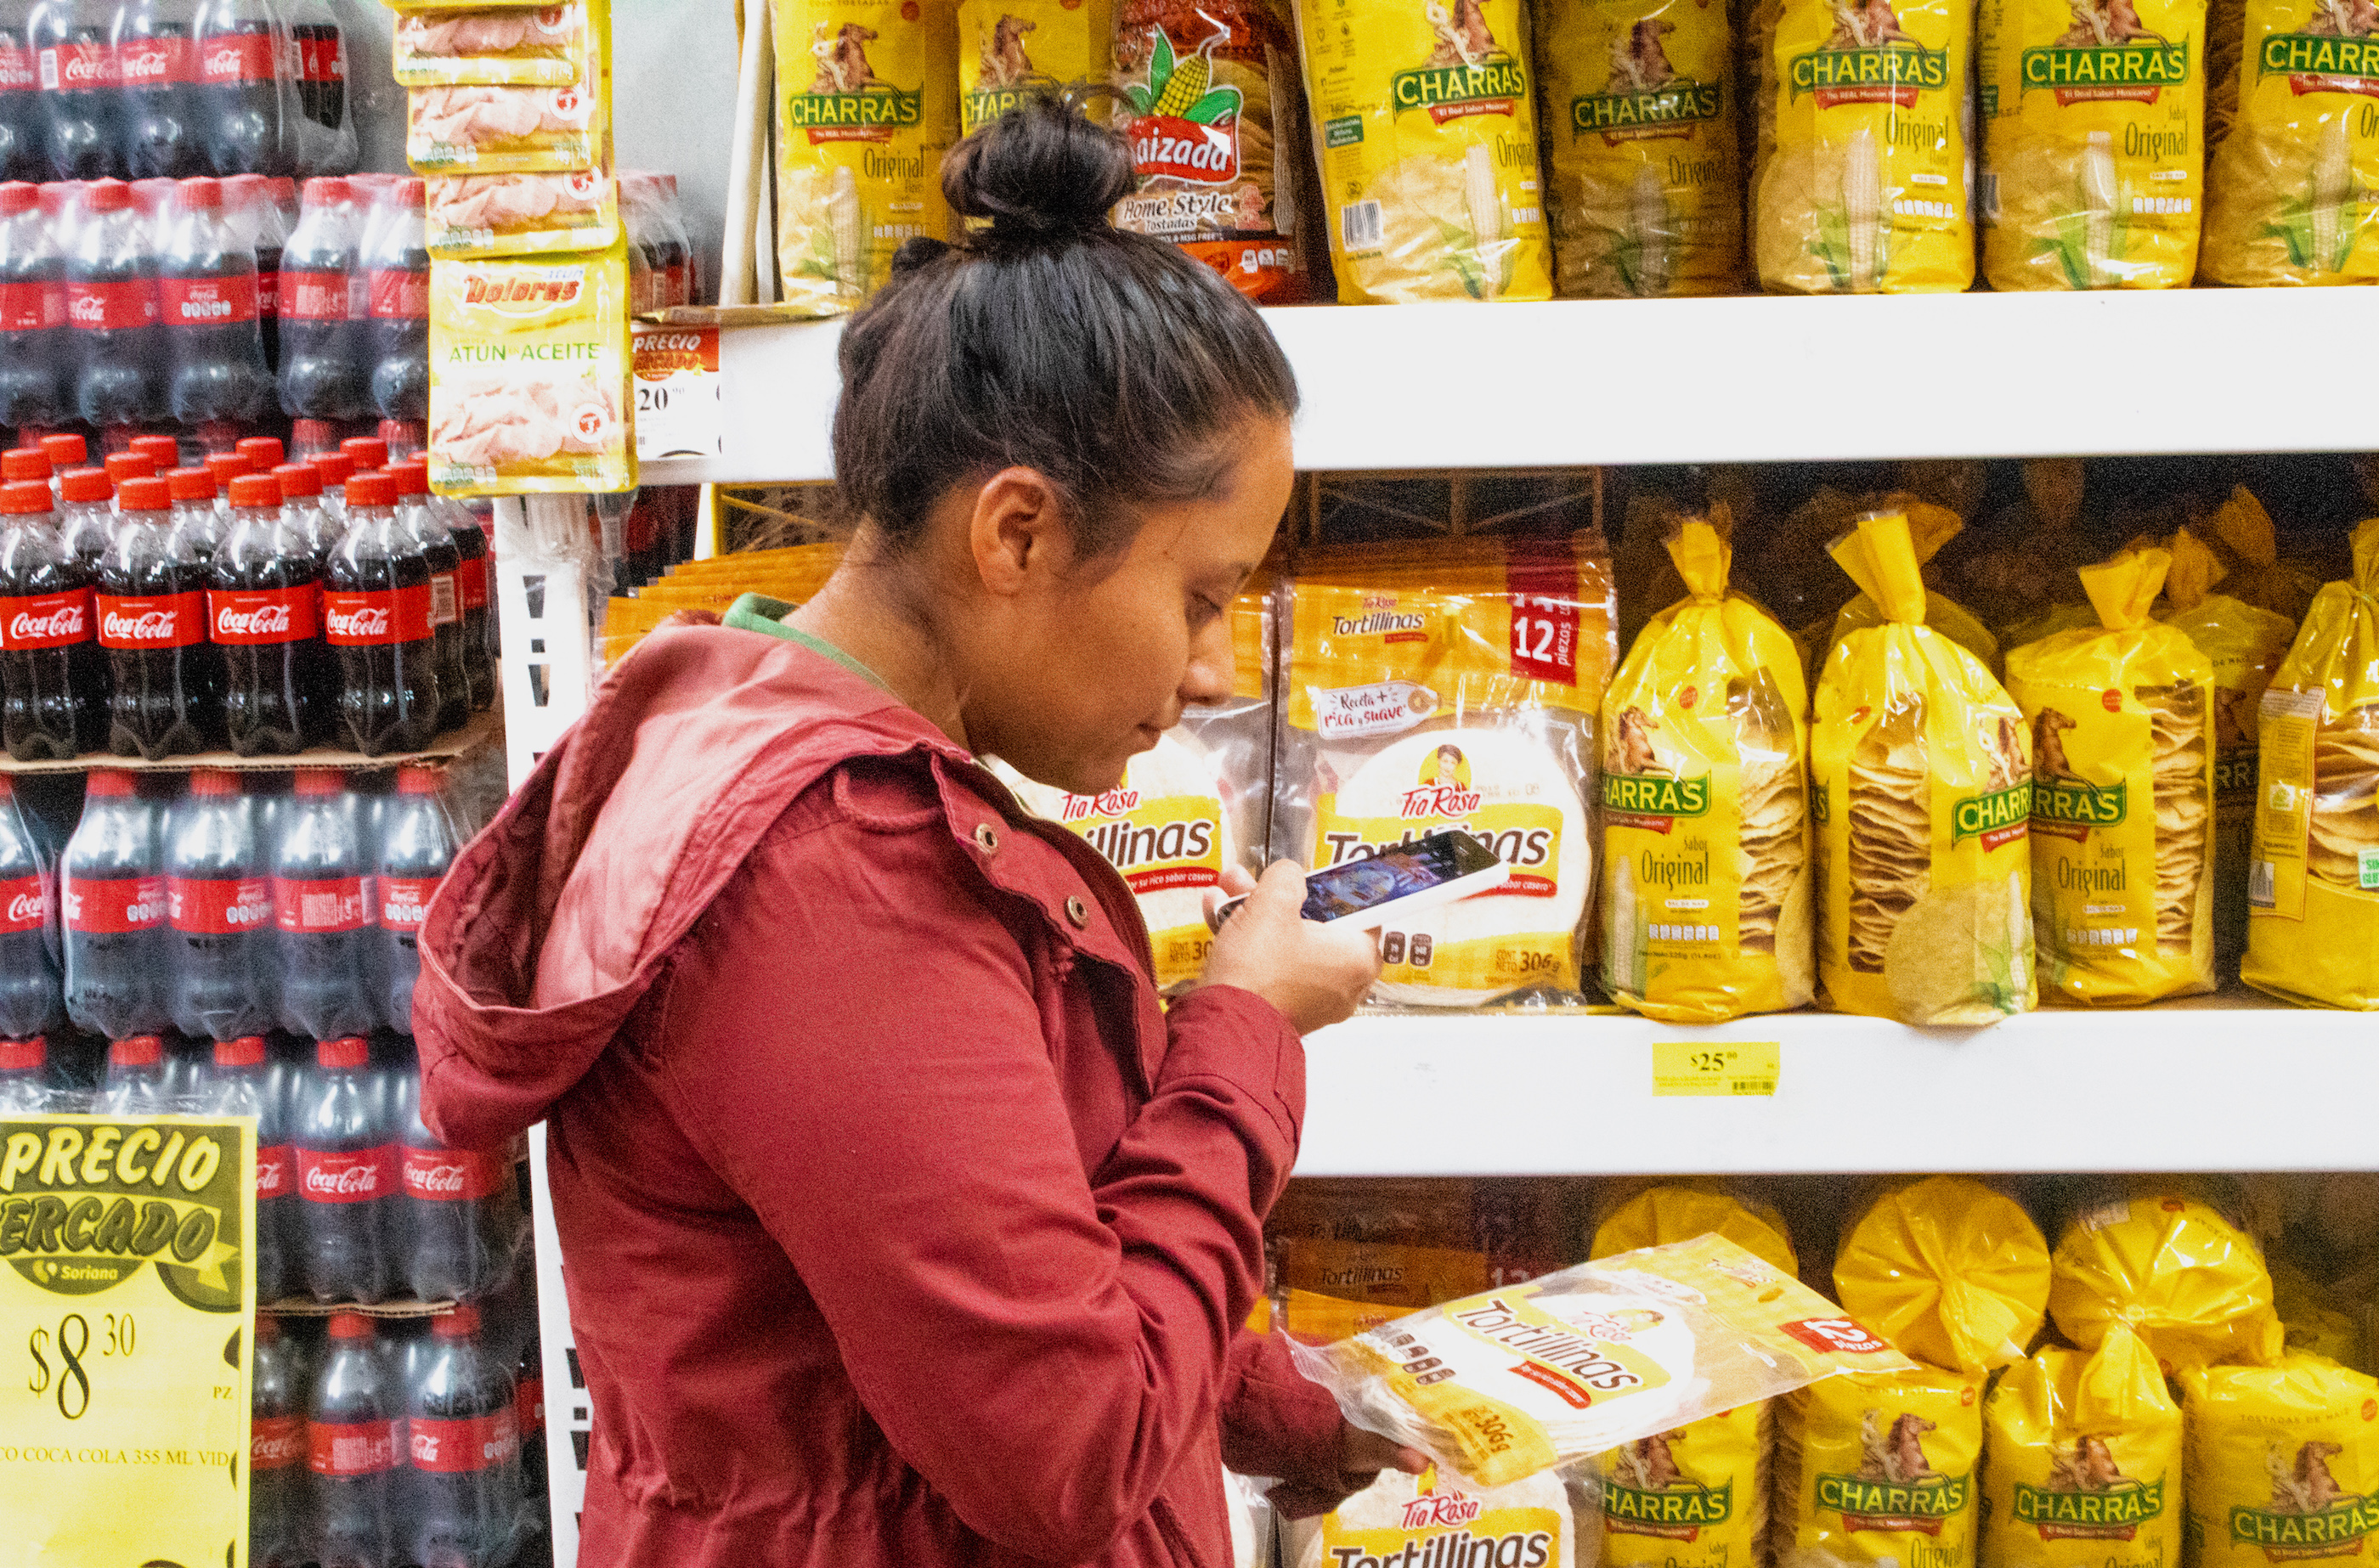 A researcher captures nutritional information from a packet of tortillas. (Photo: Emma Orchardson/CIMMYT)